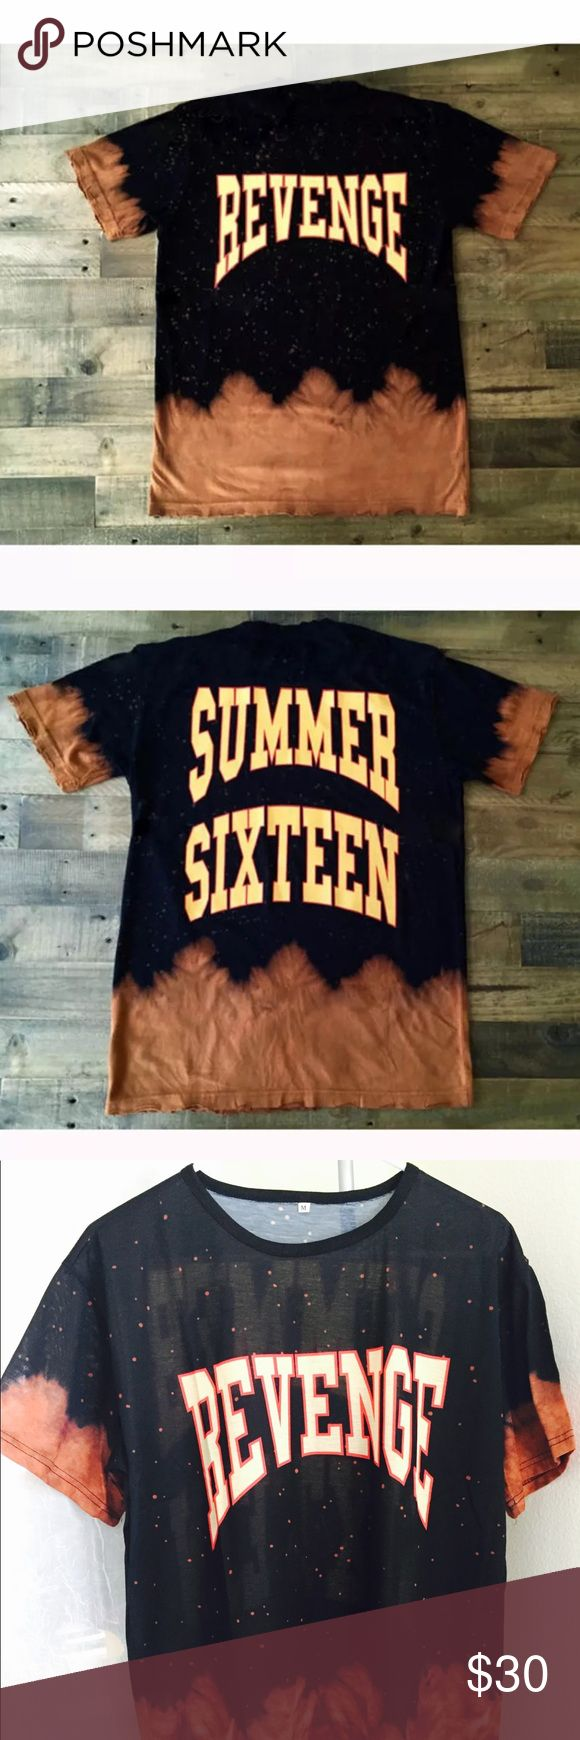 """Bleached """" Summer Sixteen """" Merch Shirt ✨ New """" Bleached Tees """" added @shadedbymini            Get Yours Now Before They SELL OUT!! 🔥                 New • """" Summer Sixteen """" Revenge Tee comes pre-bleached without rips                                                                                         Only 1 Available • High Quality • Unisex ✨                      Material: 100% Cotton…"""